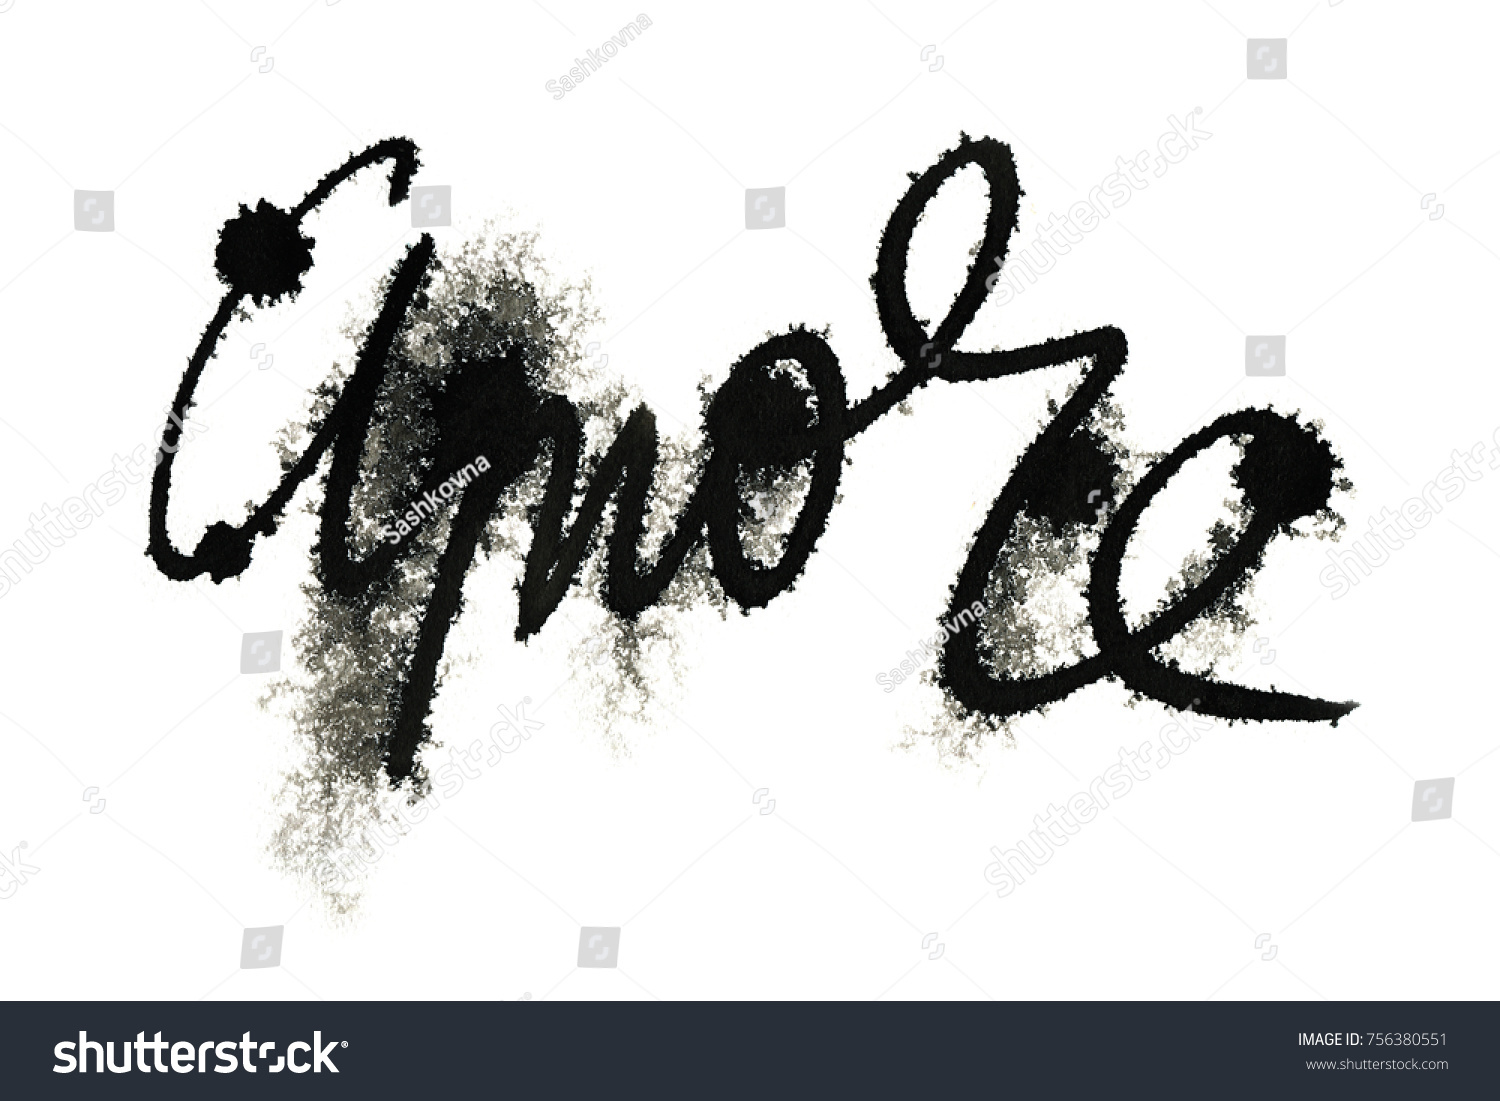 Simple Wallpaper Marble Calligraphy - stock-photo-abstract-ink-background-marble-style-black-paint-stroke-texture-on-white-paper-wallpaper-for-web-756380551  2018_483533.jpg